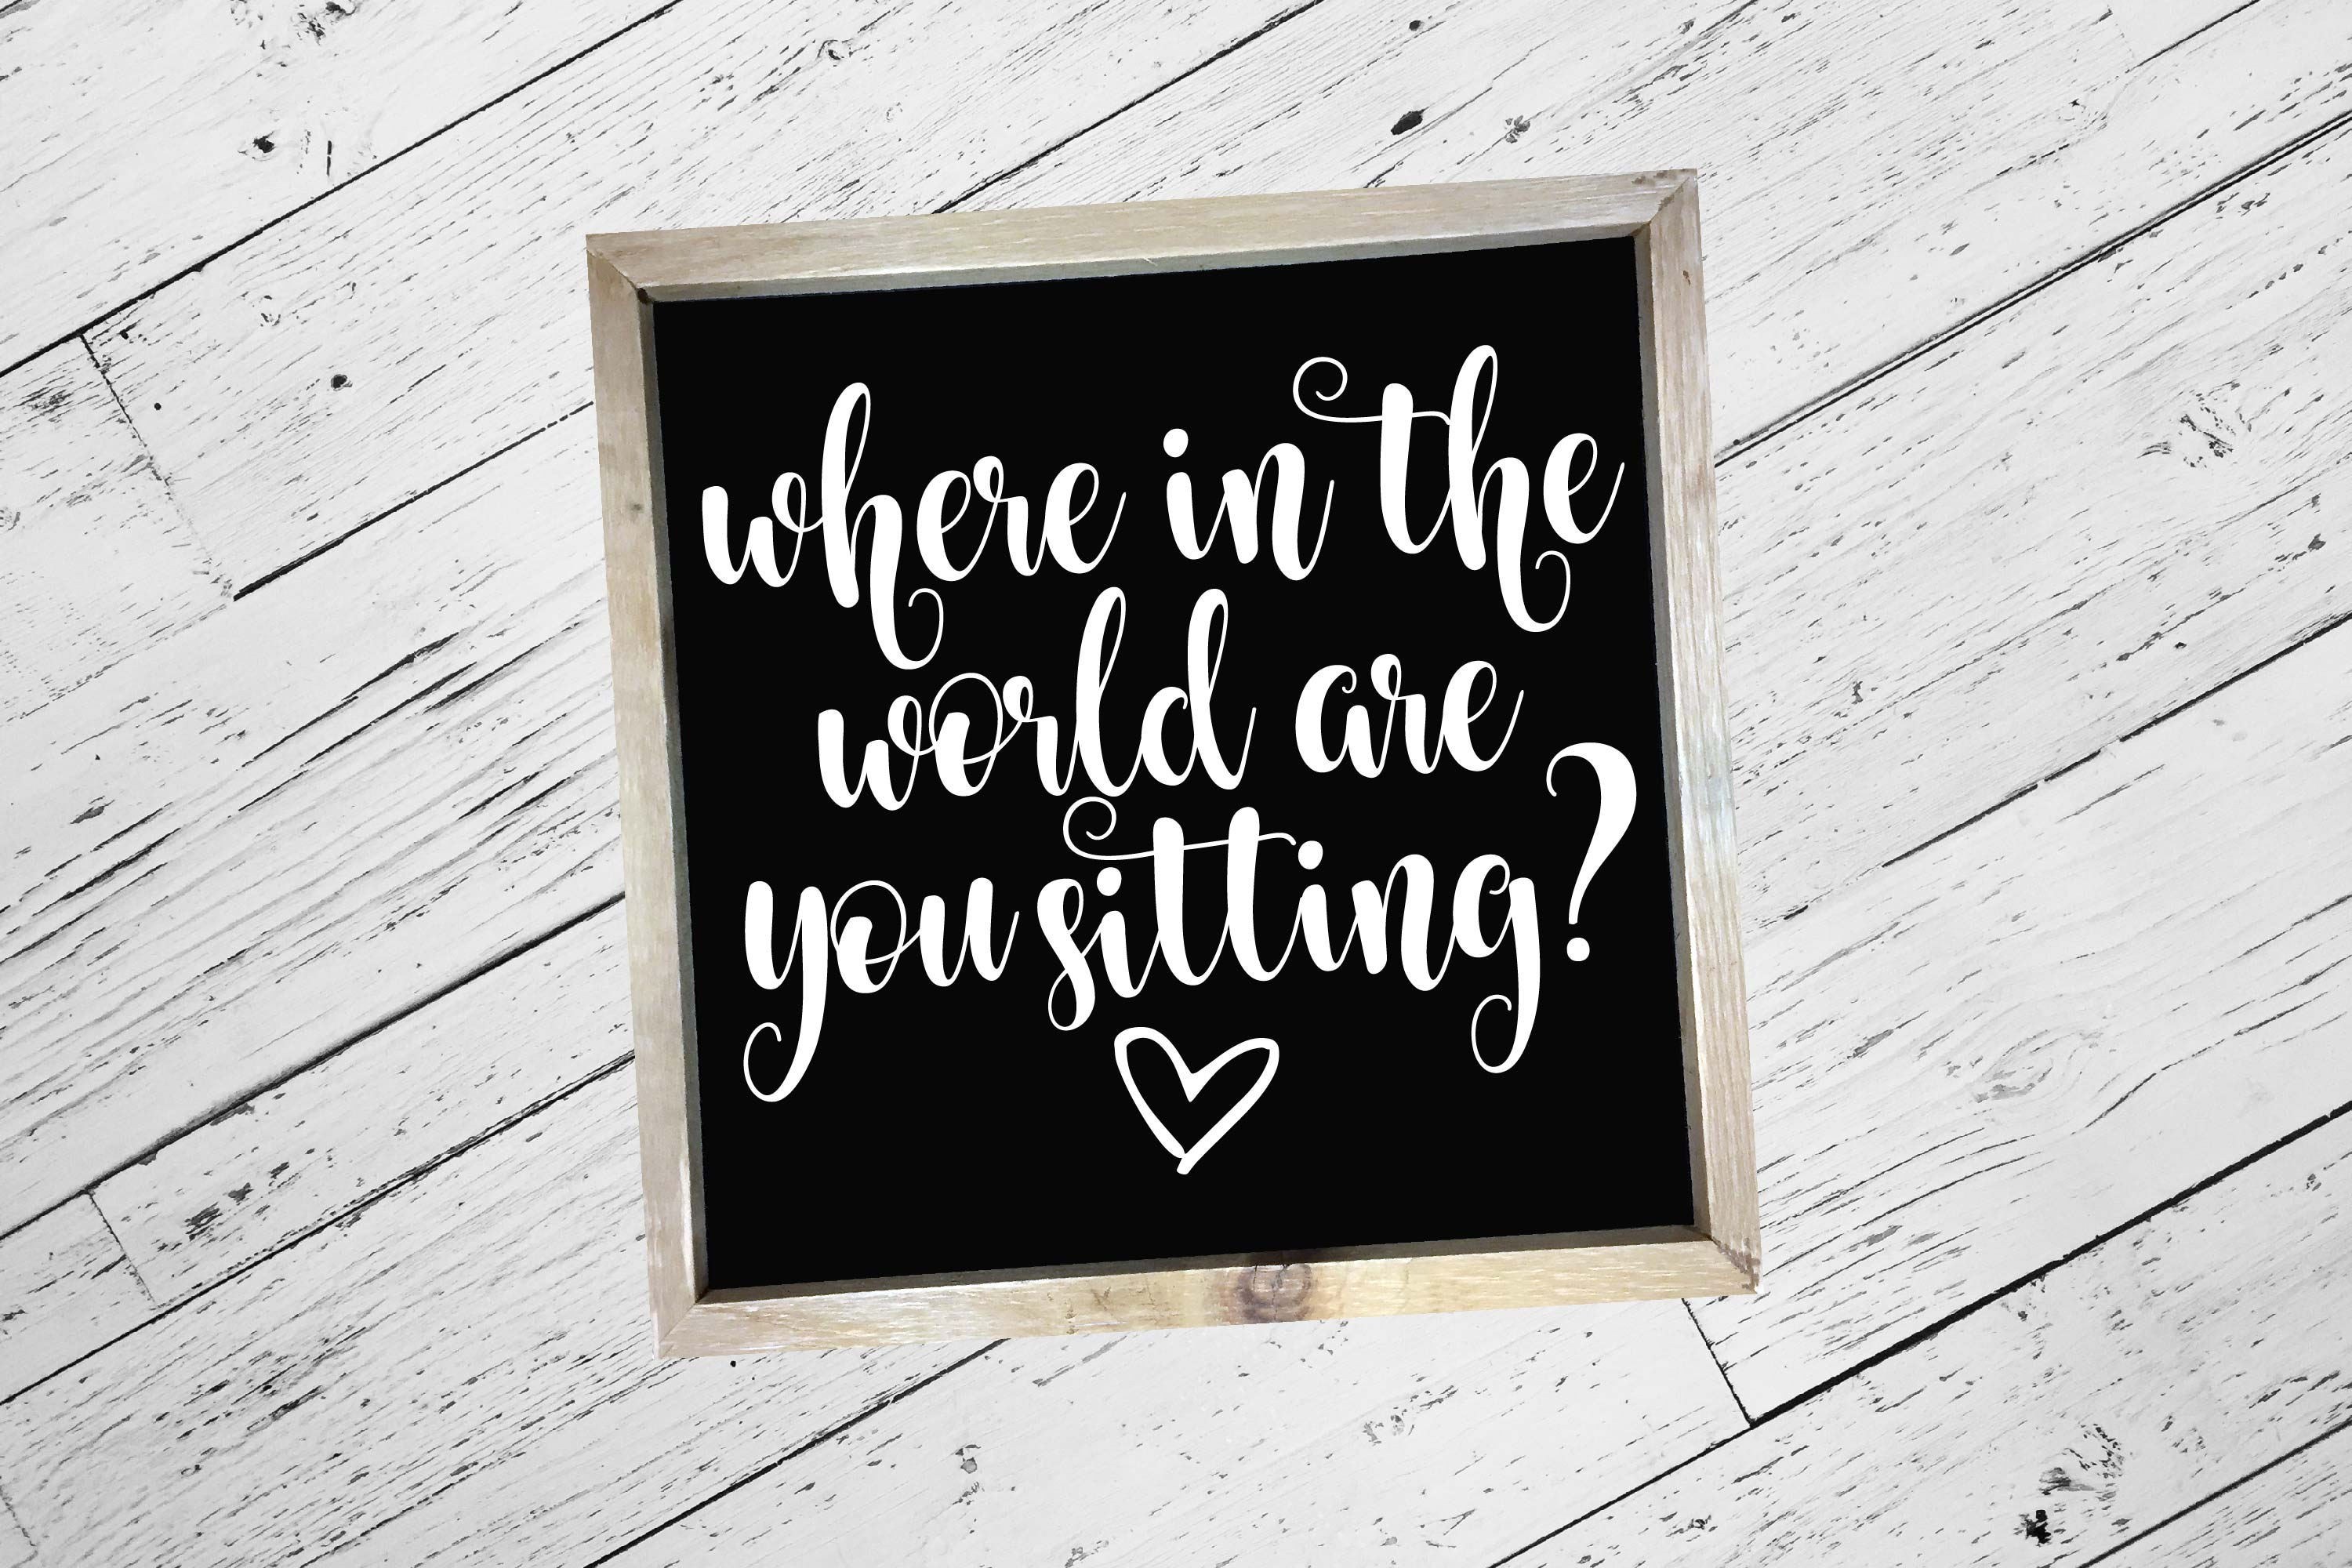 Where are you sitting? | Wedding |Wedding SVG Cut File example image 1